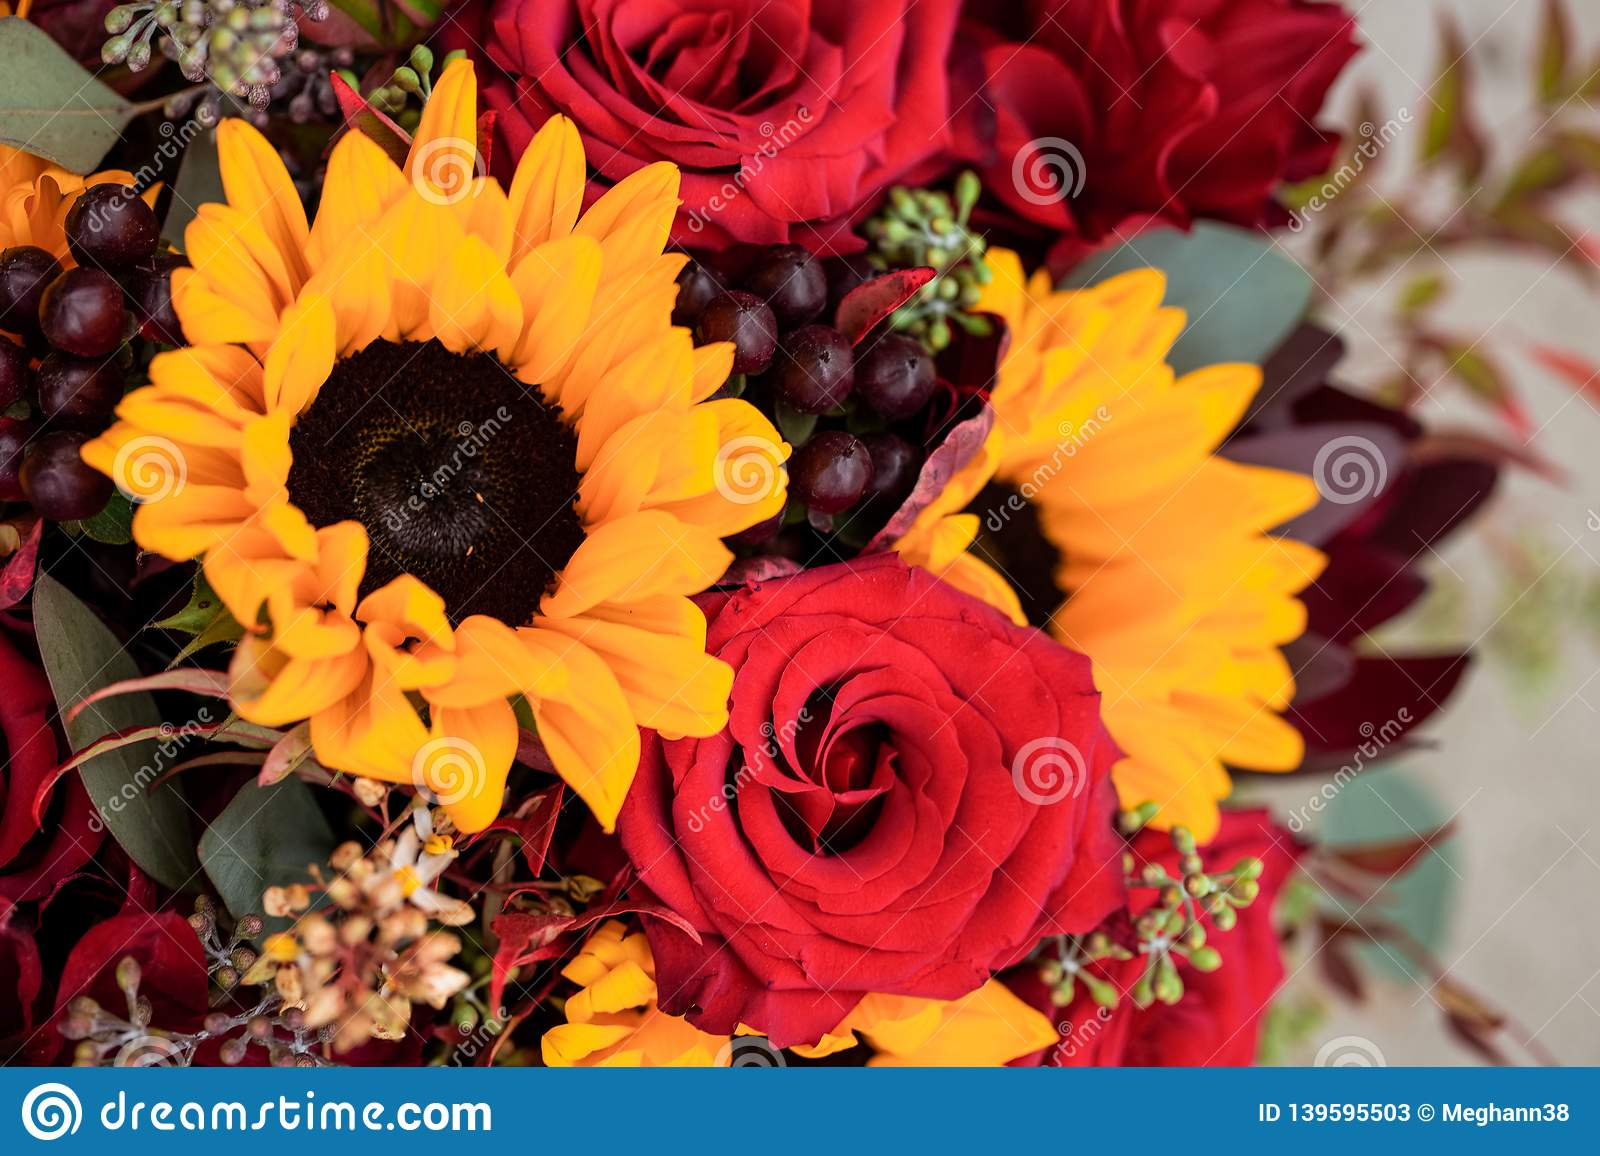 Sunflowers And Red Rose Wedding Bouquet Close Up Stock Image Image